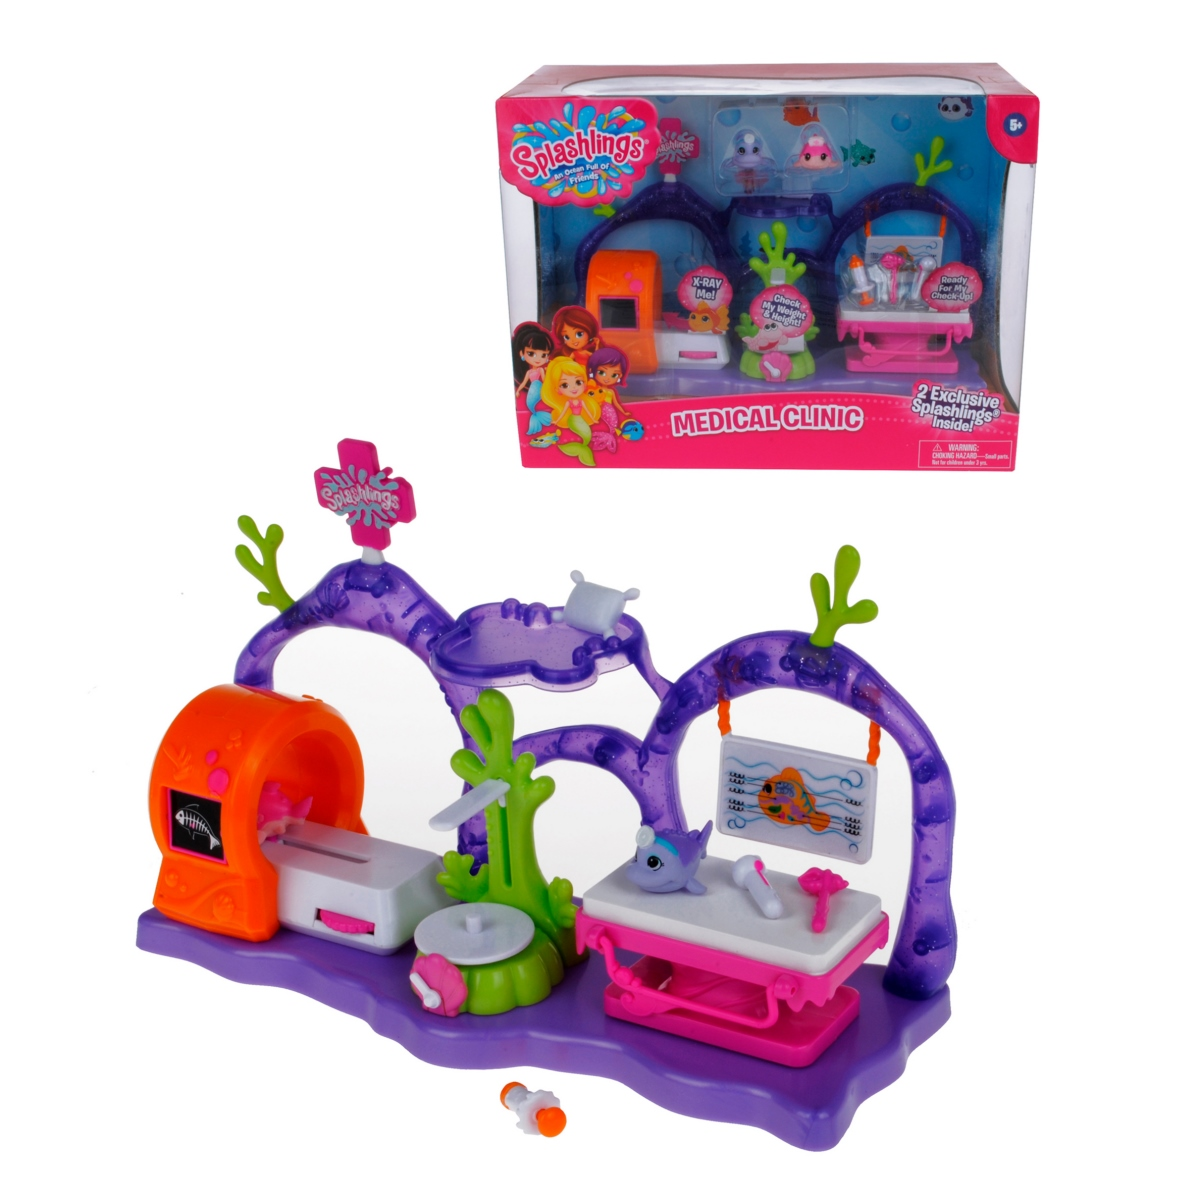 Playset Clinica Medica Splashlings